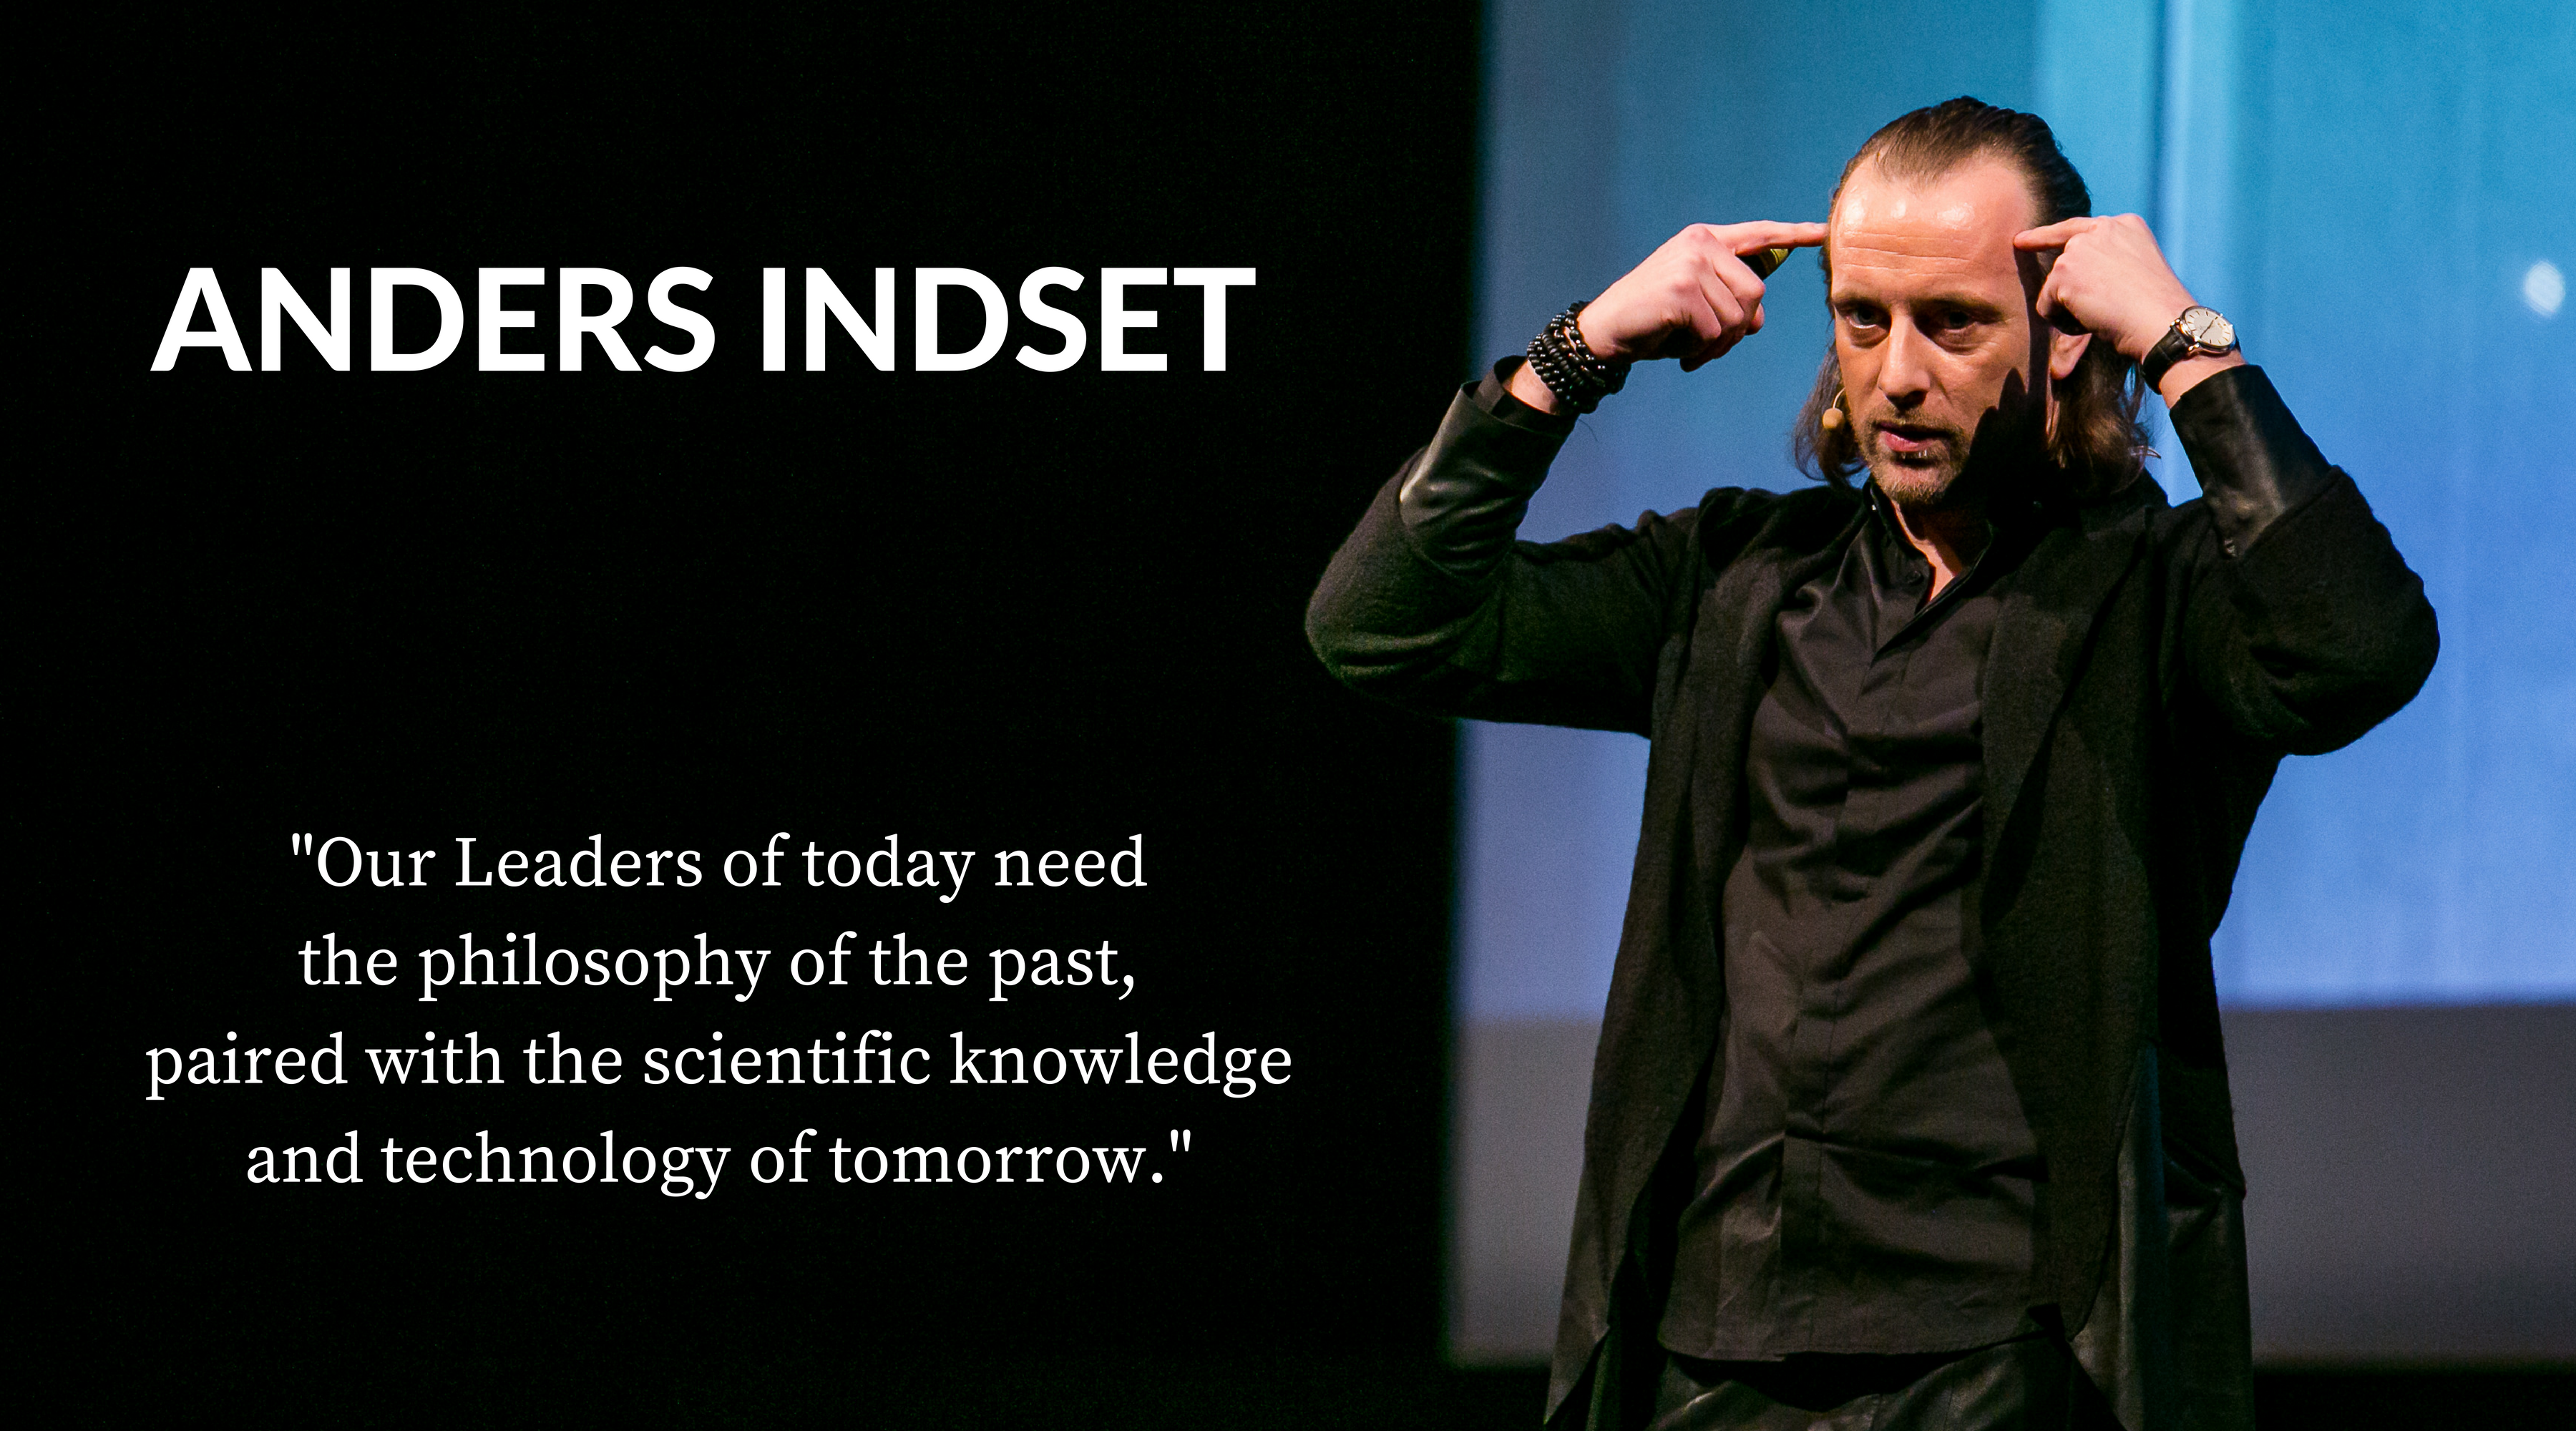 Anders Indset RIGA COMM Business Innovation Conference 2016 Keynote Speaker quote